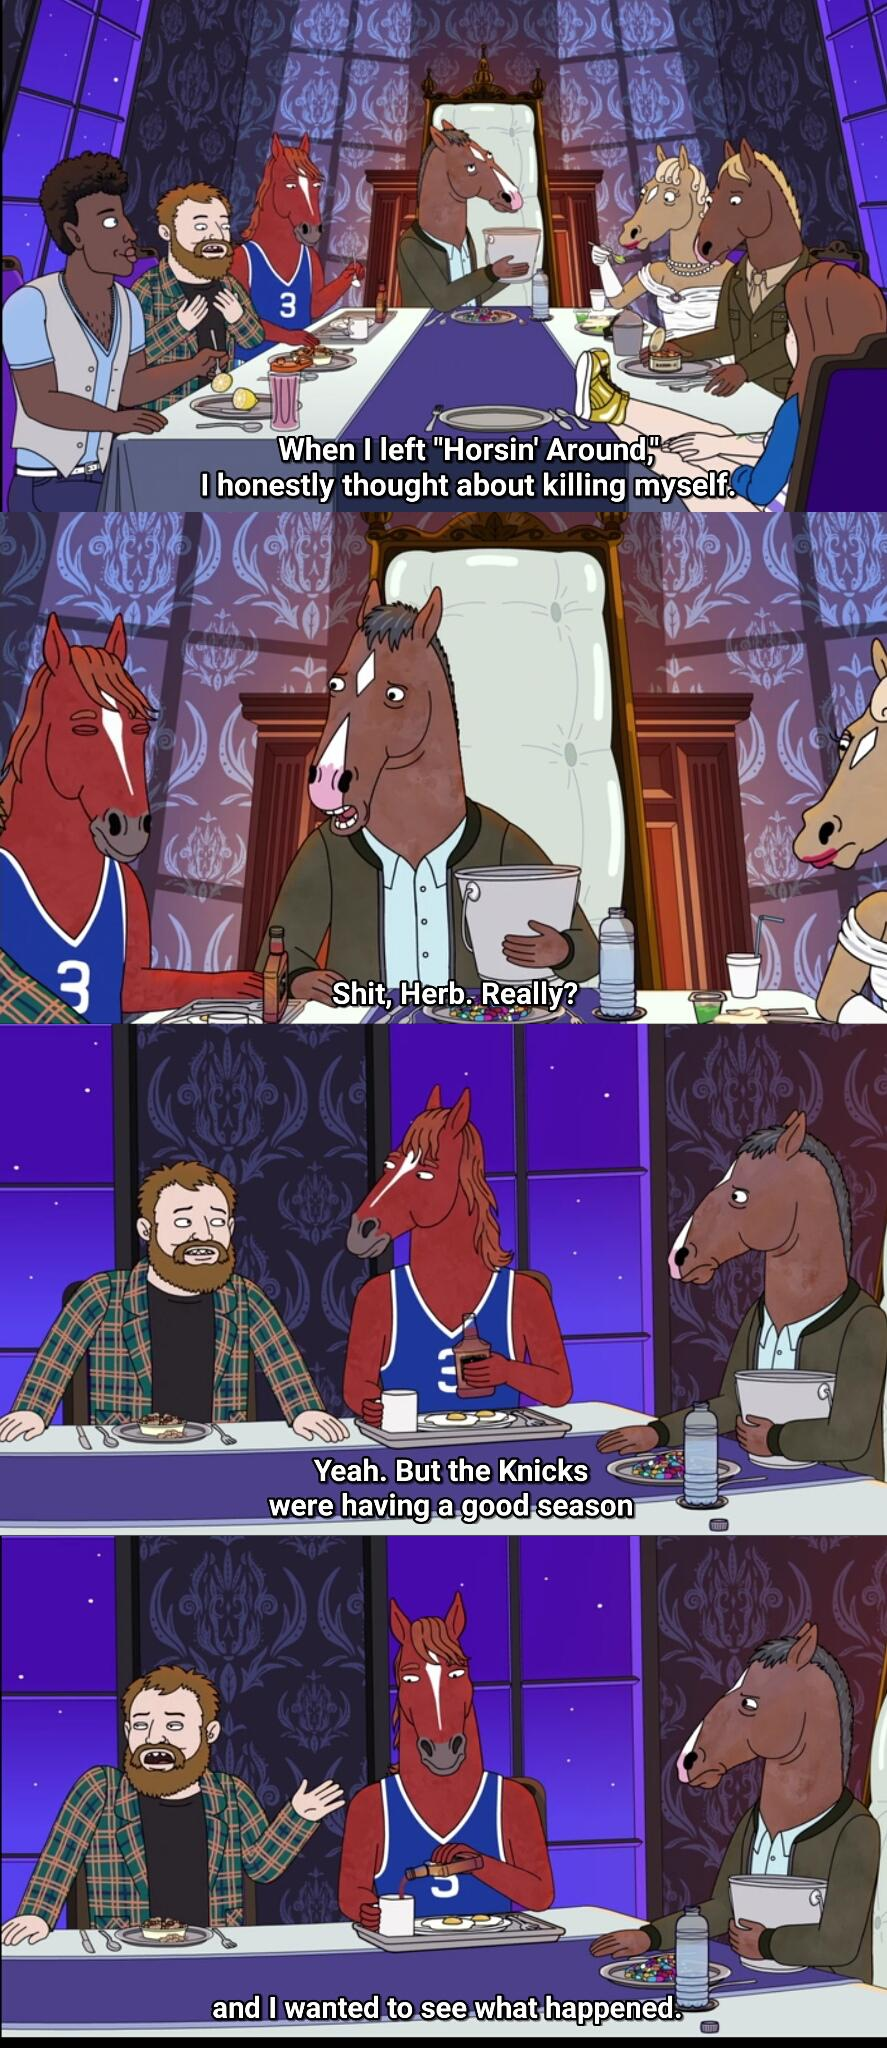 [Image] It's the little things that keep you going (BoJack Horseman 2014-2020)